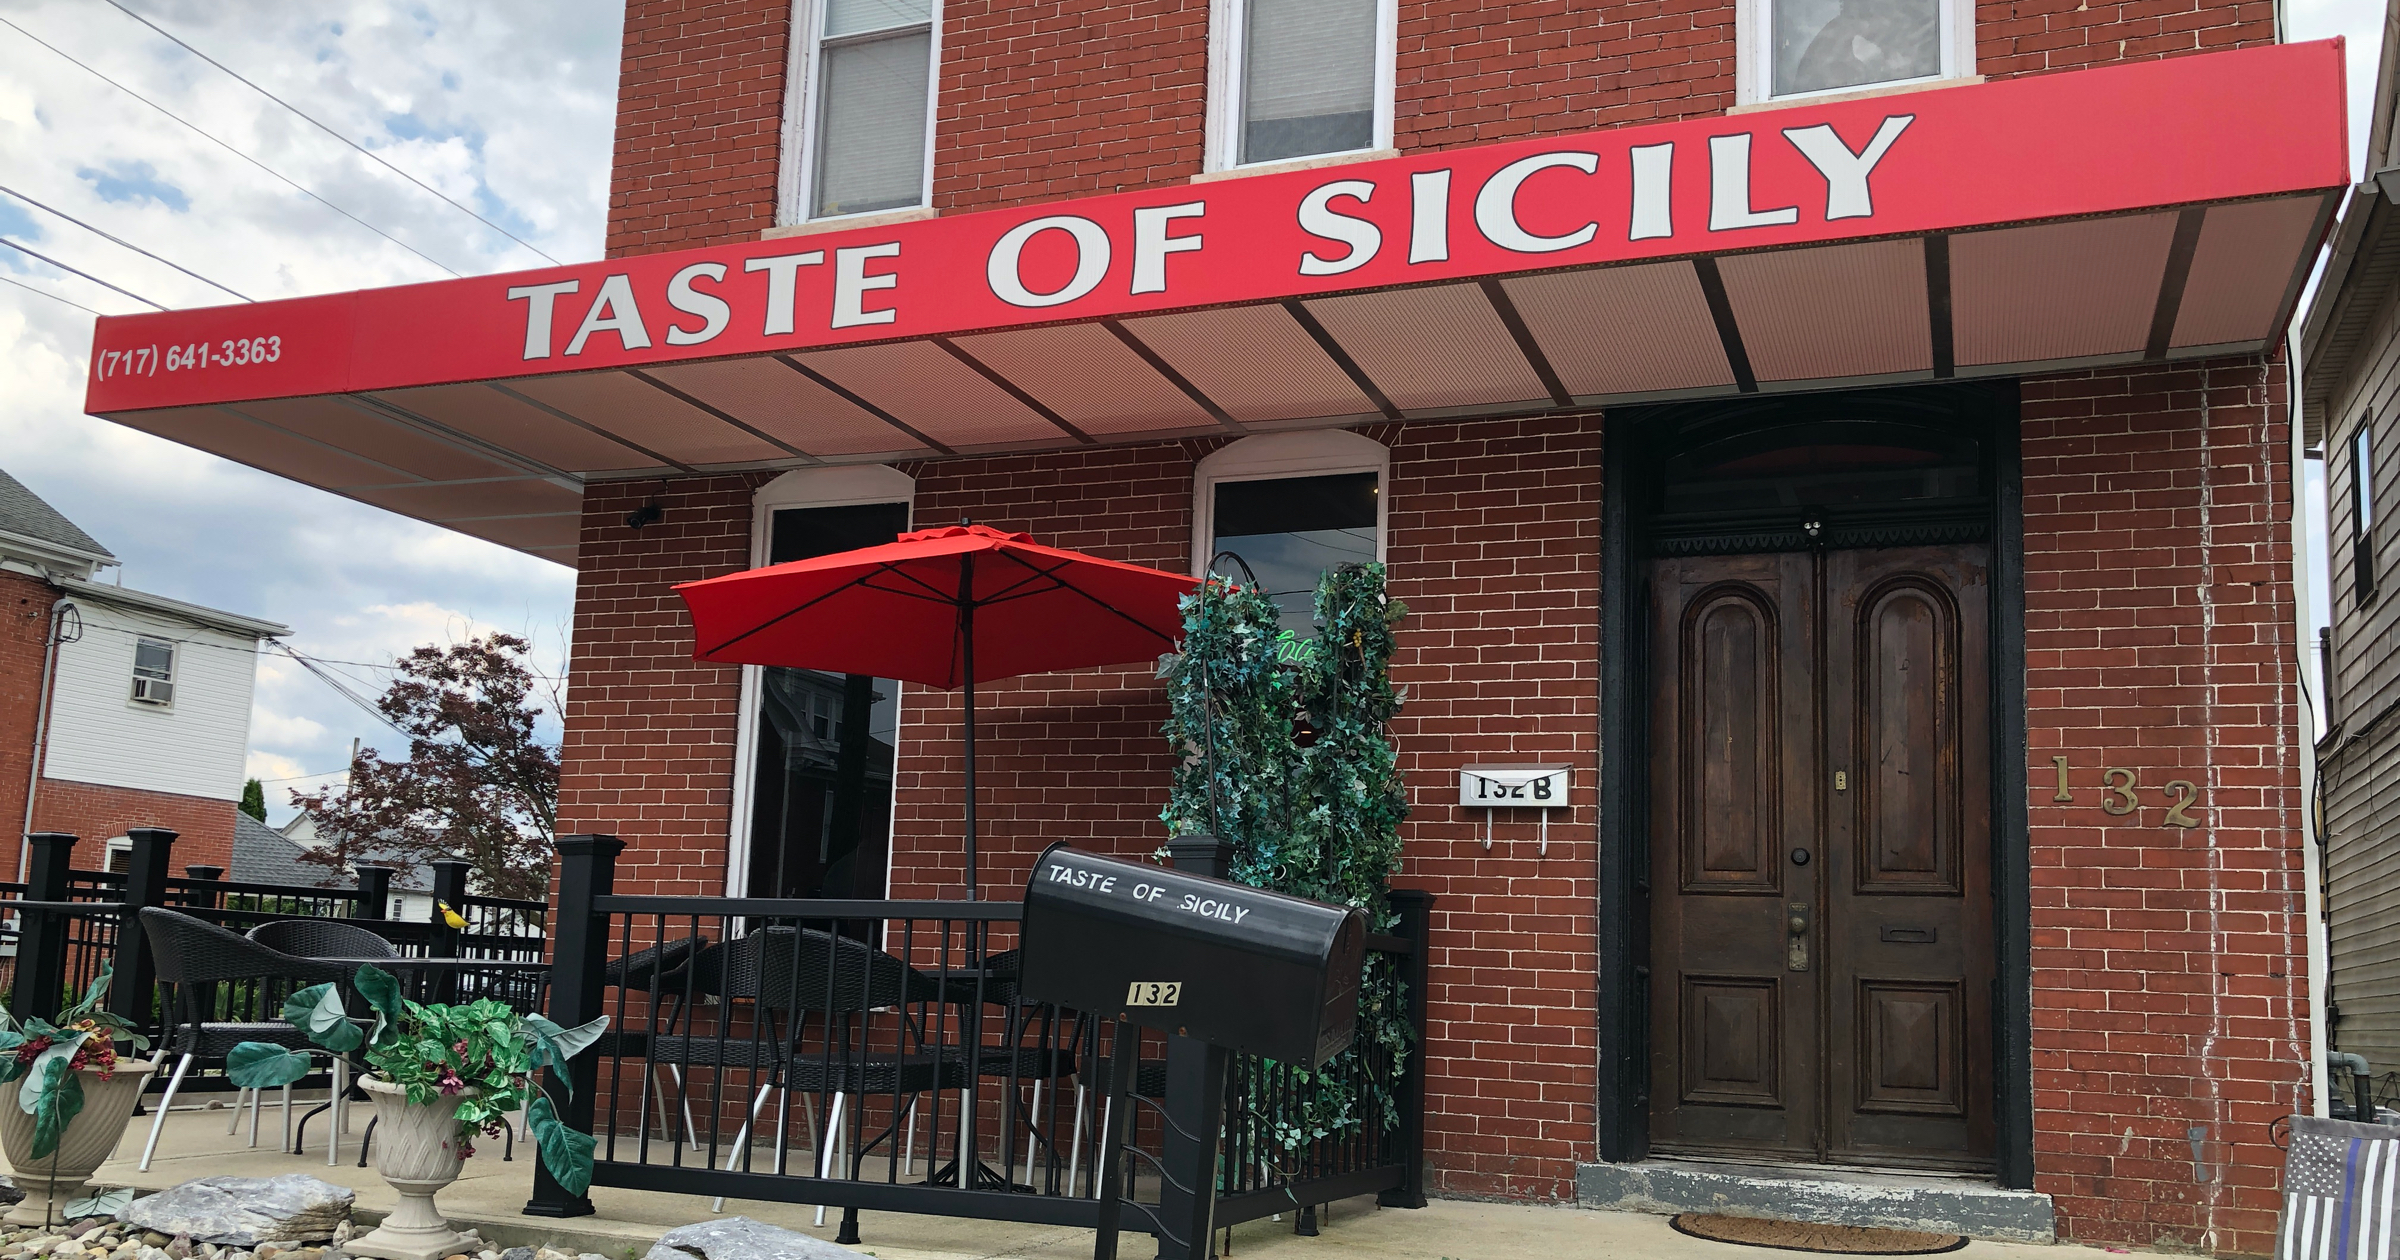 Taste of Sicily receives third fine, $6k total in penalties so far from state